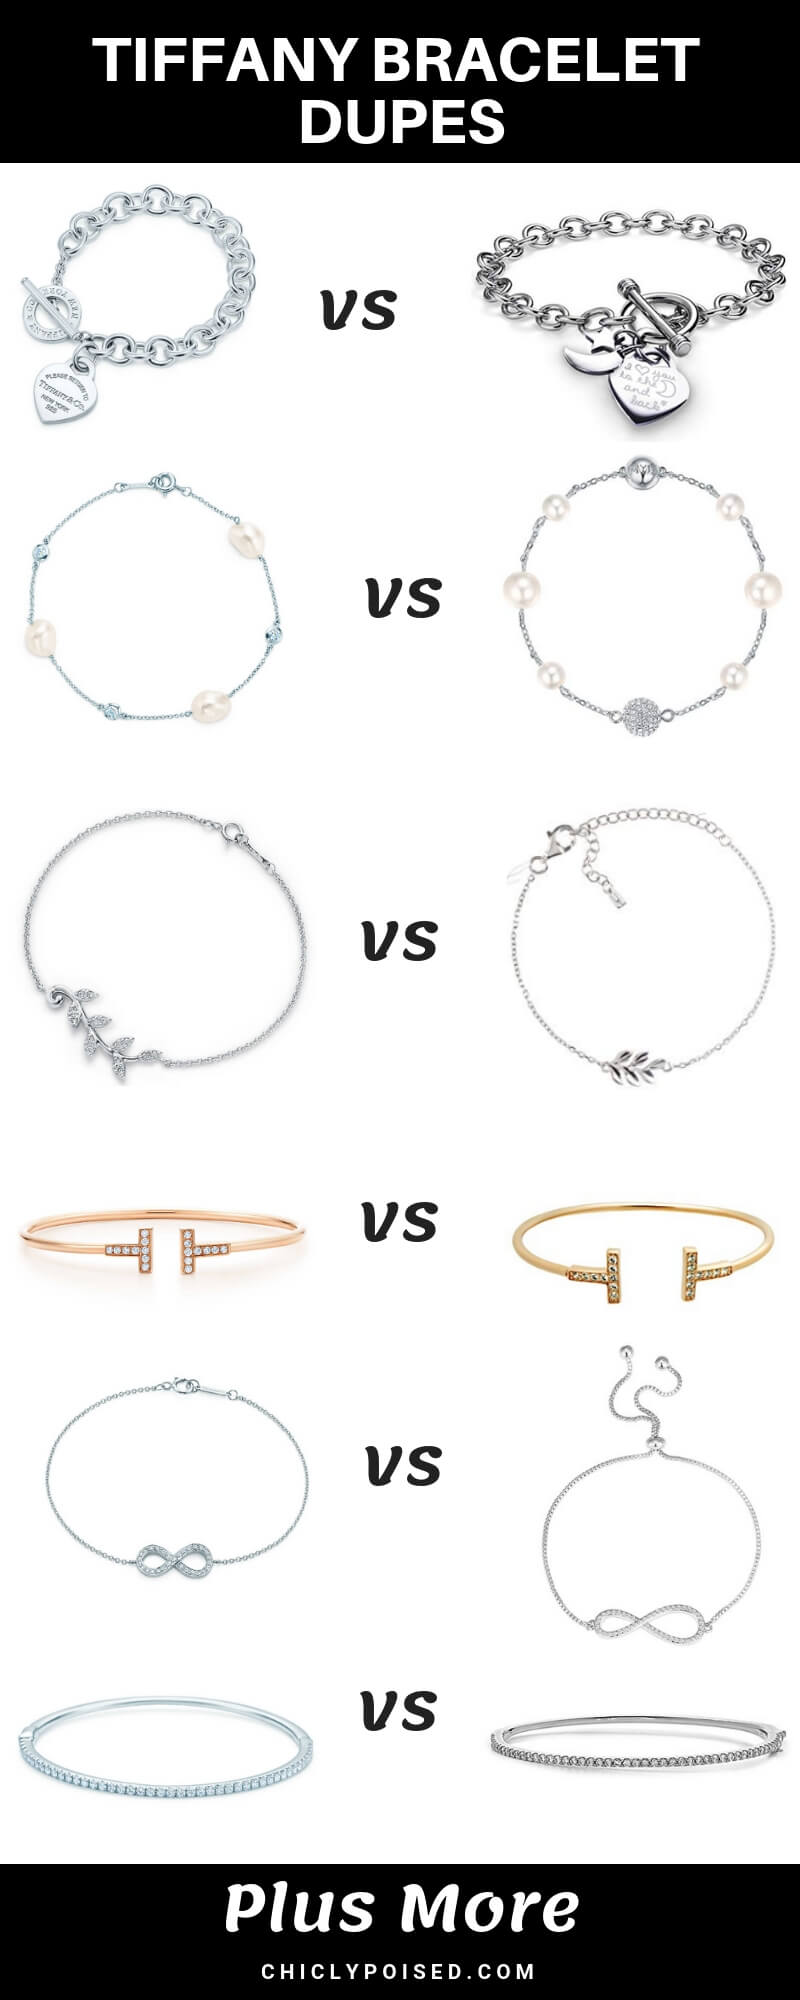 Tiffany Bracelet Dupes You Need In Your Life For A Little More Fun